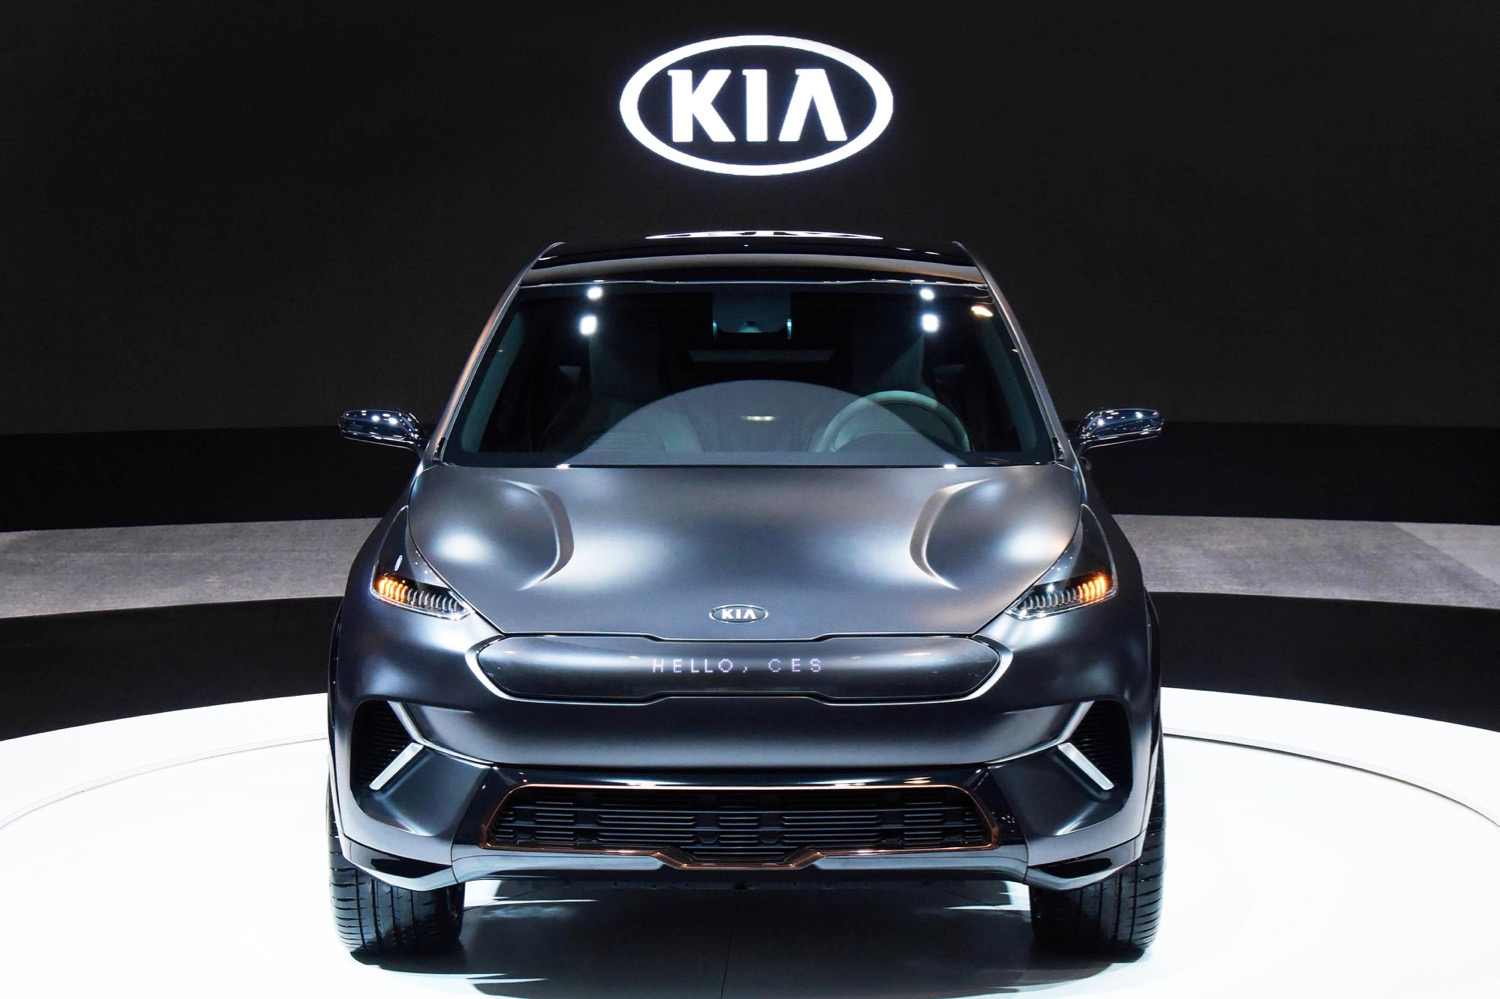 kia s future includes self driving cars more electrified models car sharing. Black Bedroom Furniture Sets. Home Design Ideas